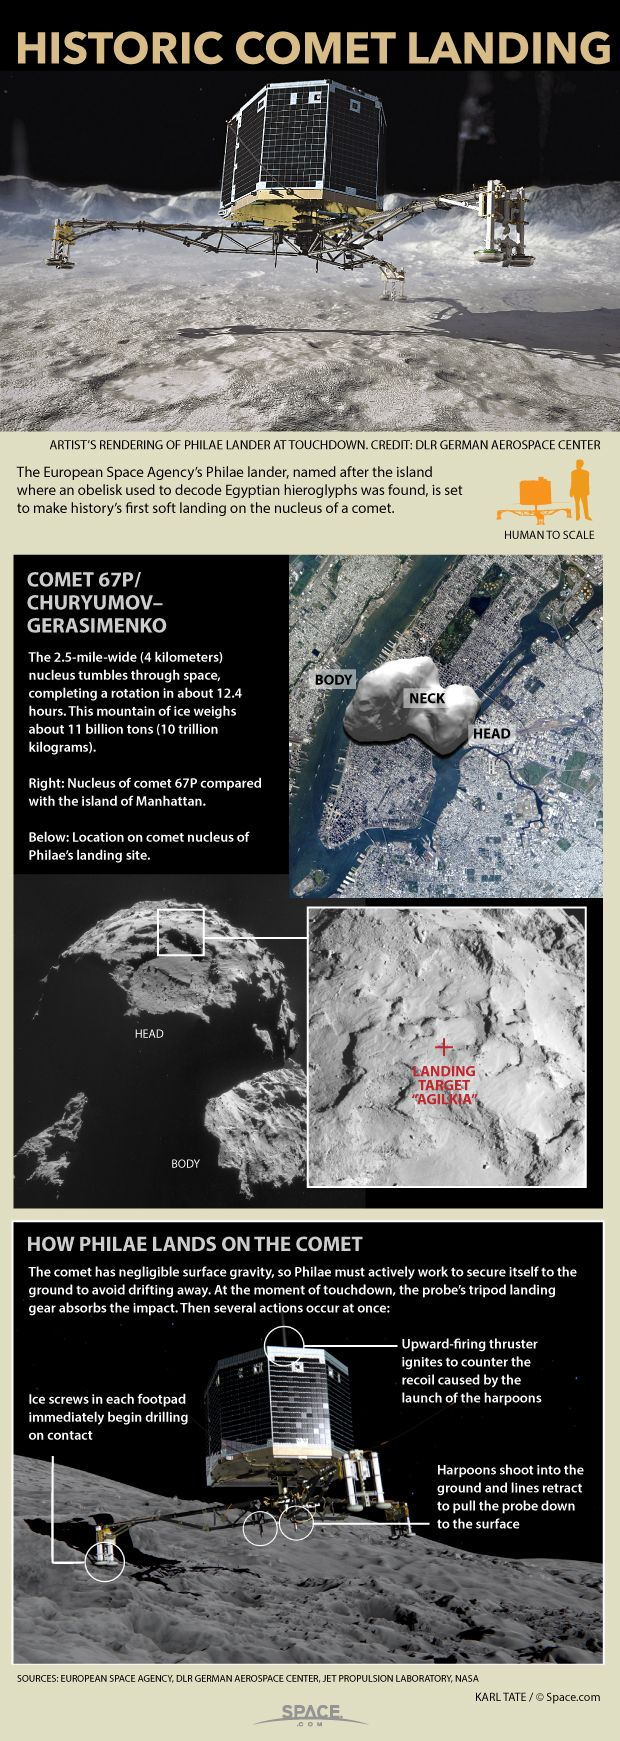 The European Rosetta spacecraft's Philae lander aims to be the first probe ever to safely land on a comet. Here's how to land on a spinning ice mountain in space.<br />